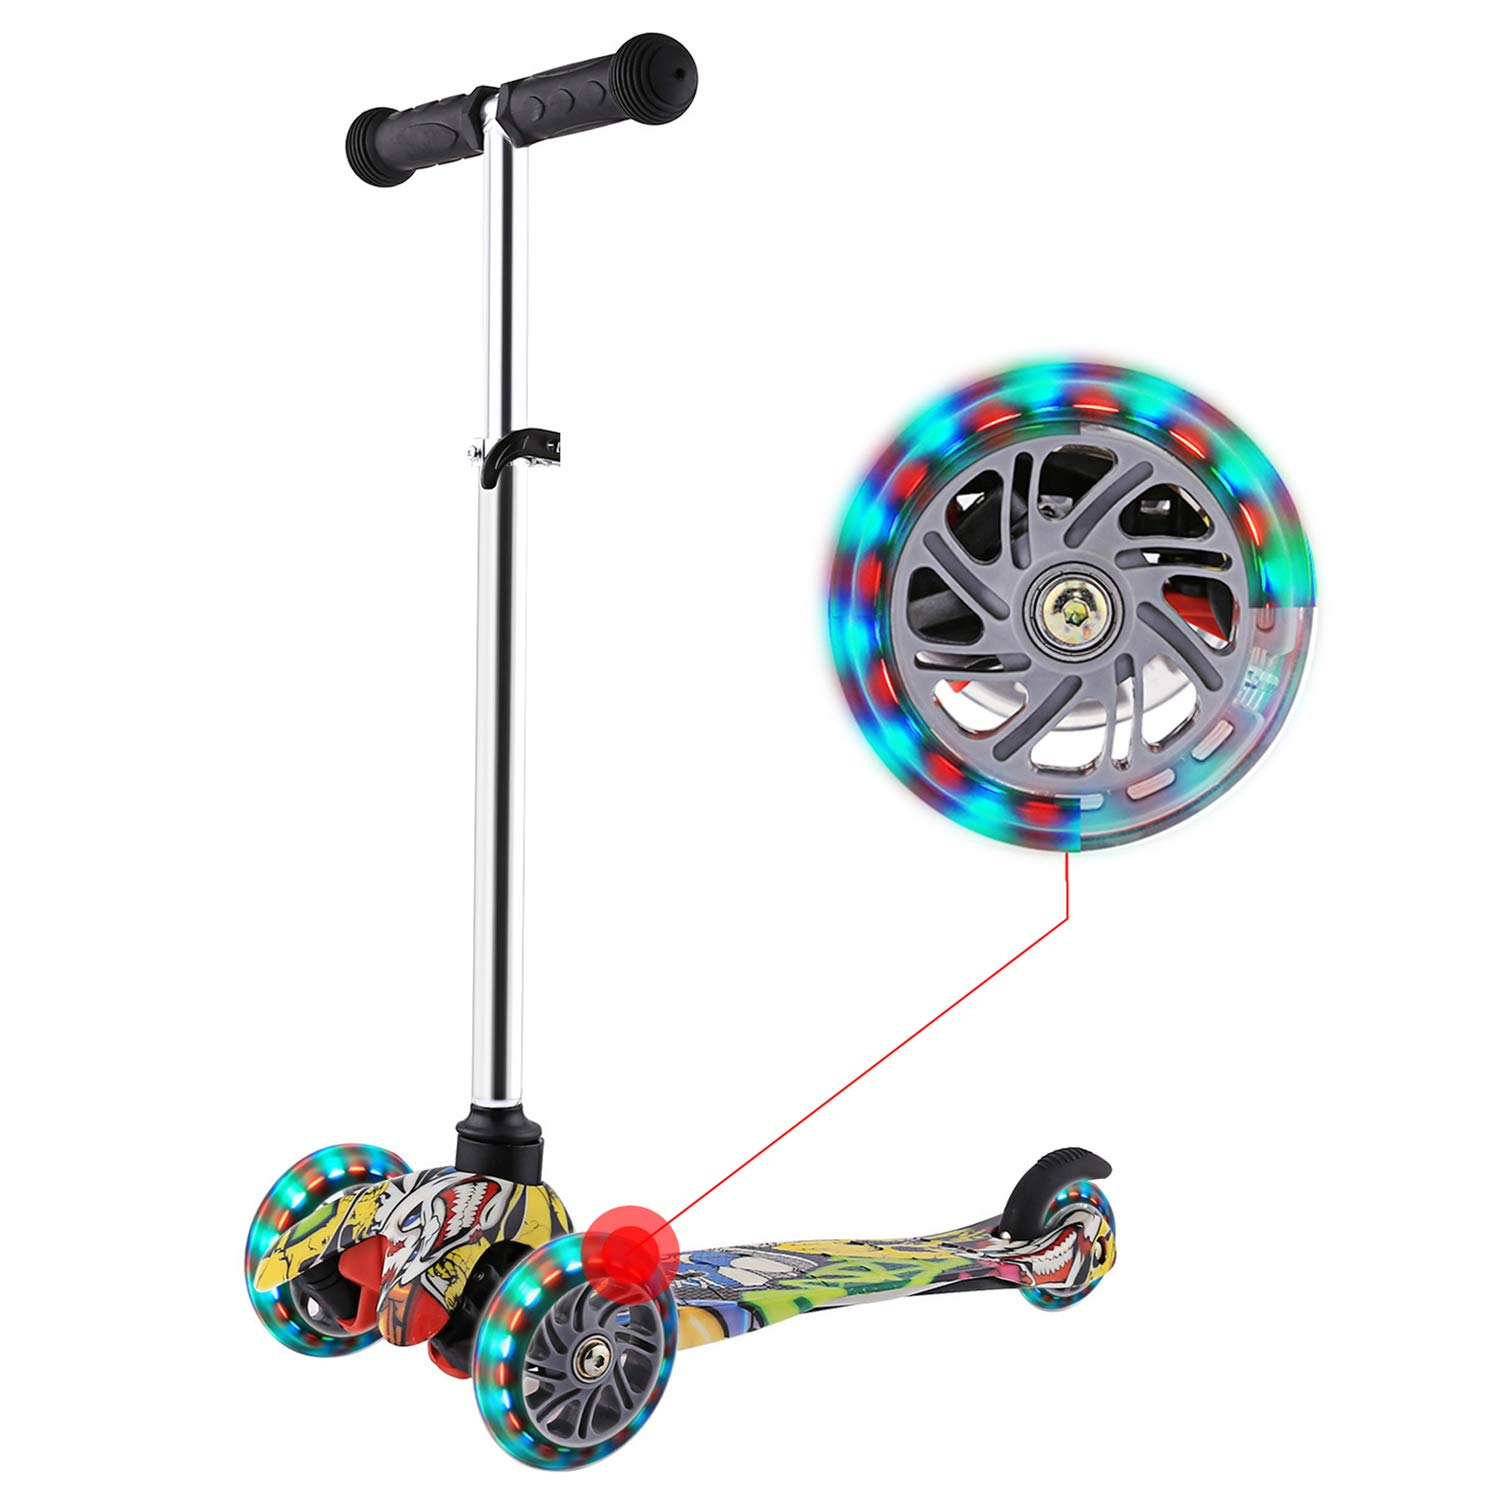 WeSkate Mini Scooter for Kids, Lights Up Scooter for Girls Boys, Toddlers Scooter with 4 Level Adjustable Height, Design for Children Ages 2-8